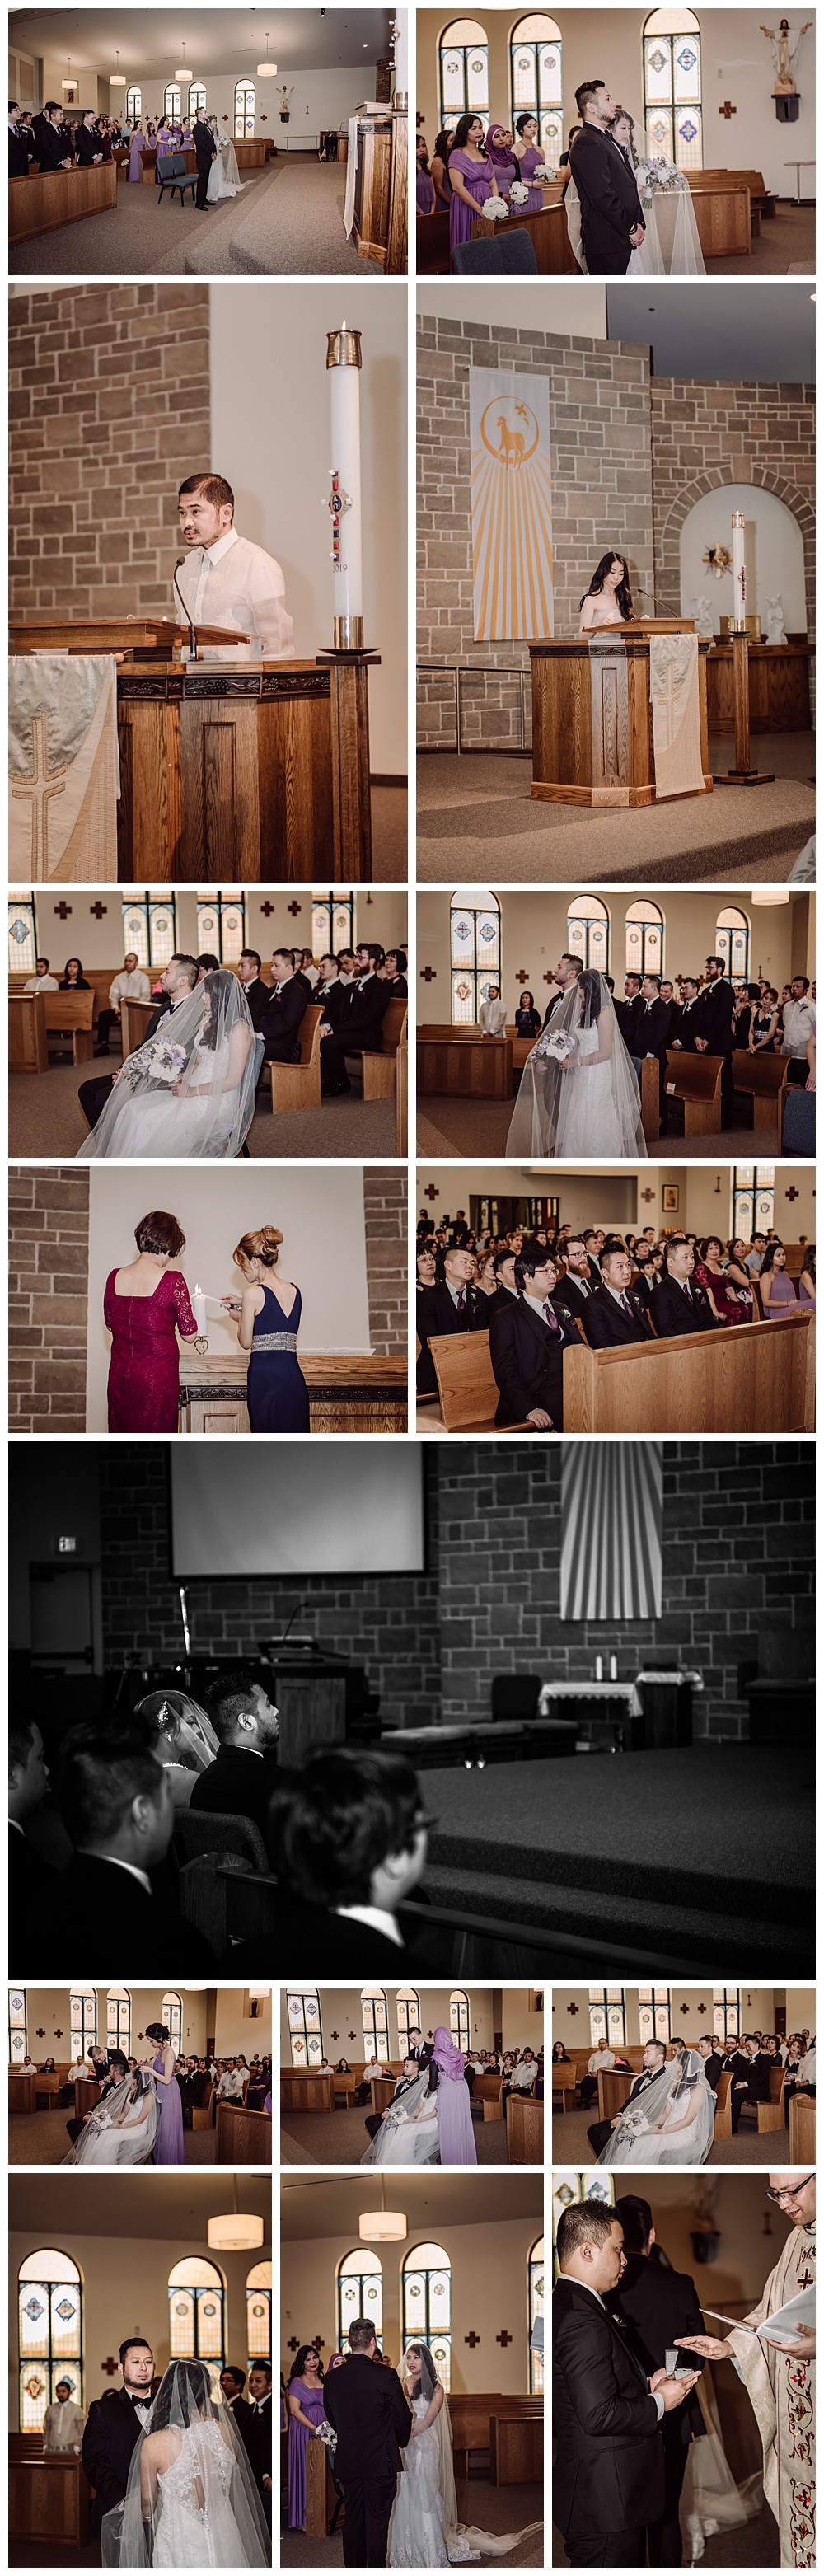 Ceremony, Church, Speeches, Bride and Groom, Traditional Blessings